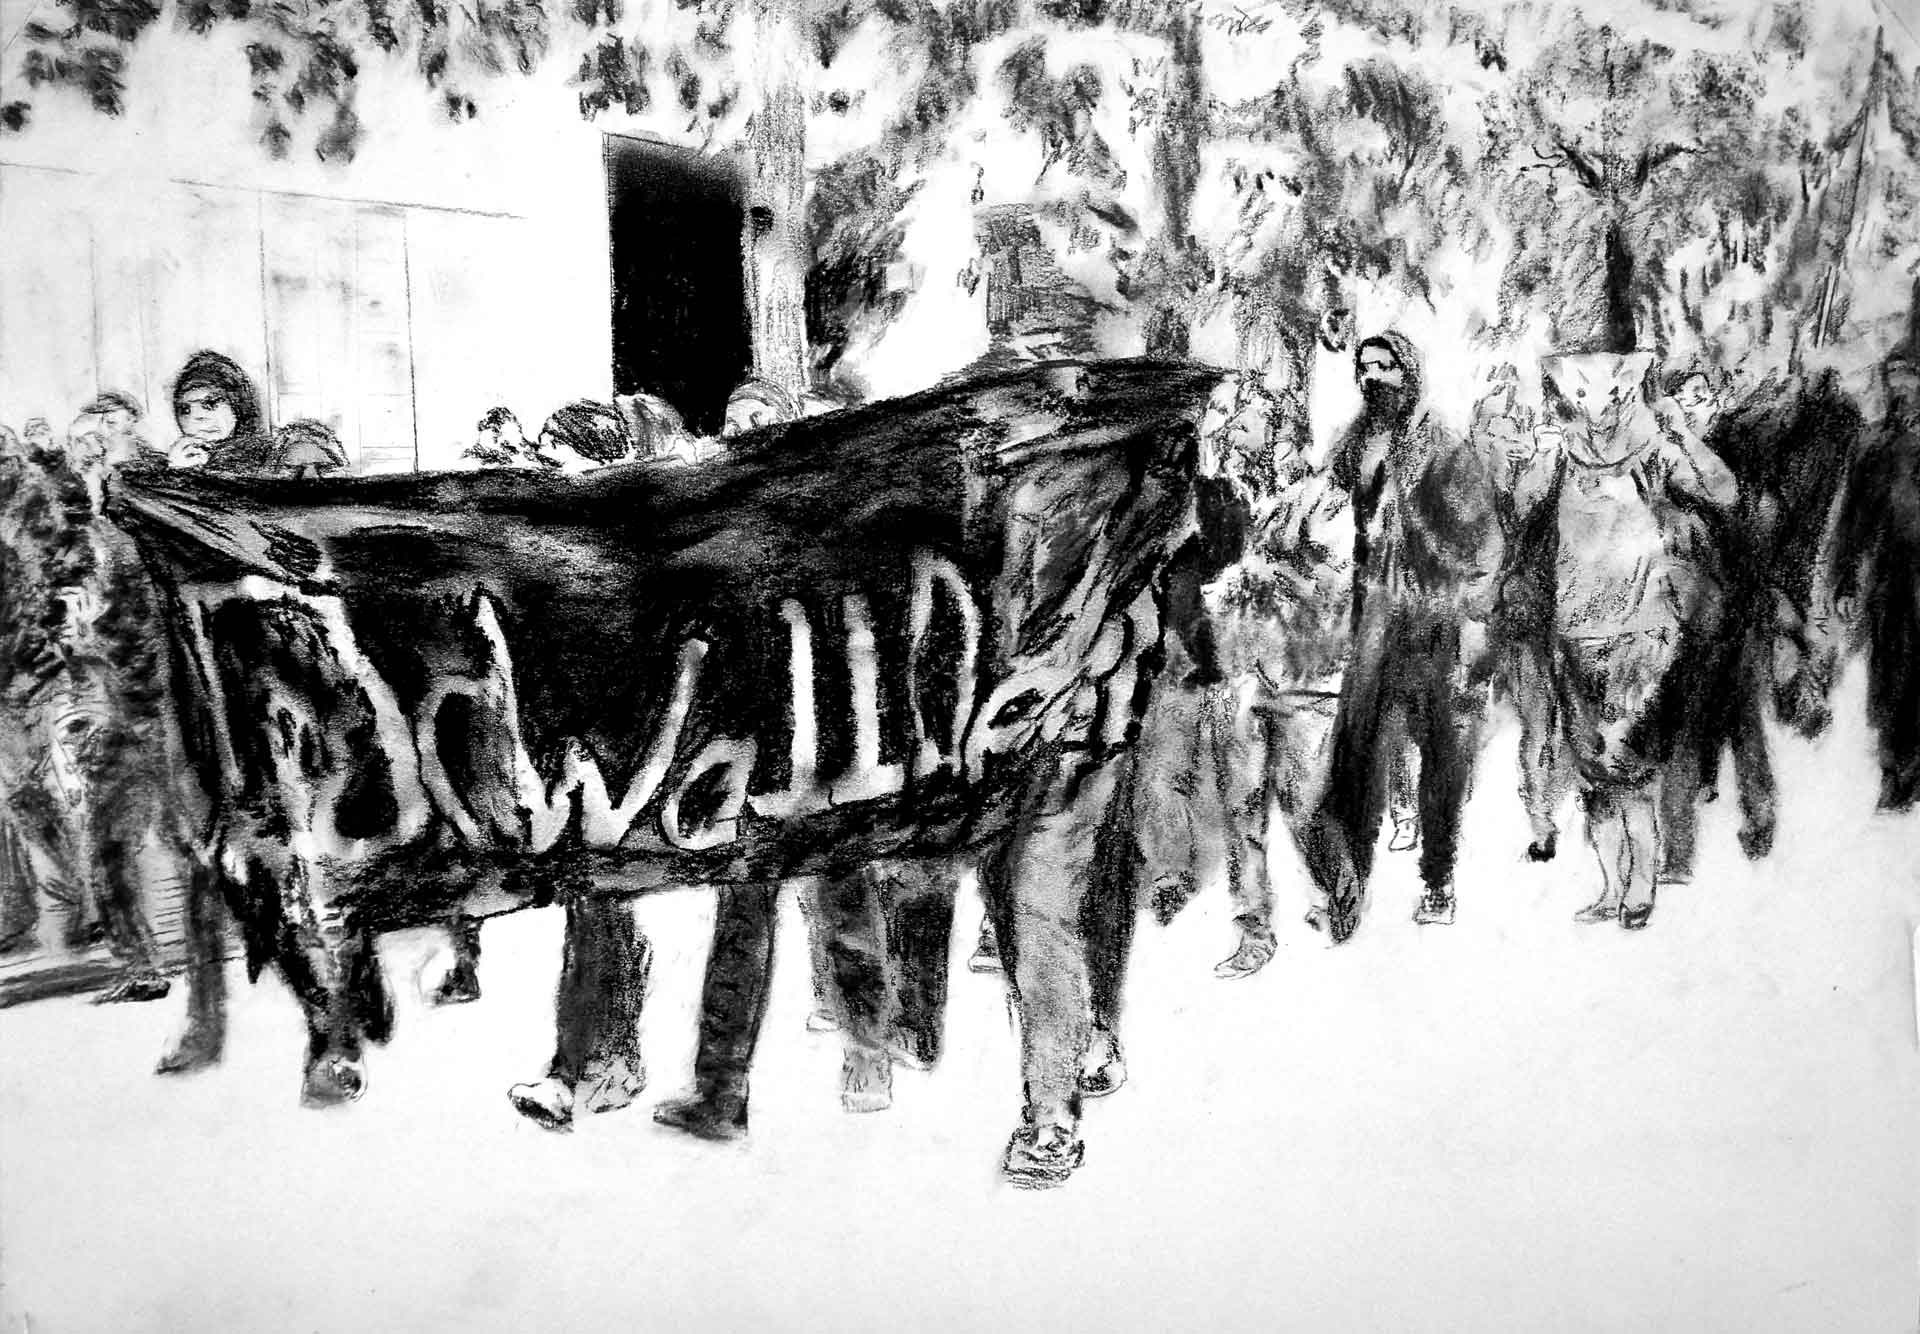 Black Bloc Protests. May Day. Berlin. Charcoal on Paper, 42 x 59.4cm., 16.5 x 23 in.